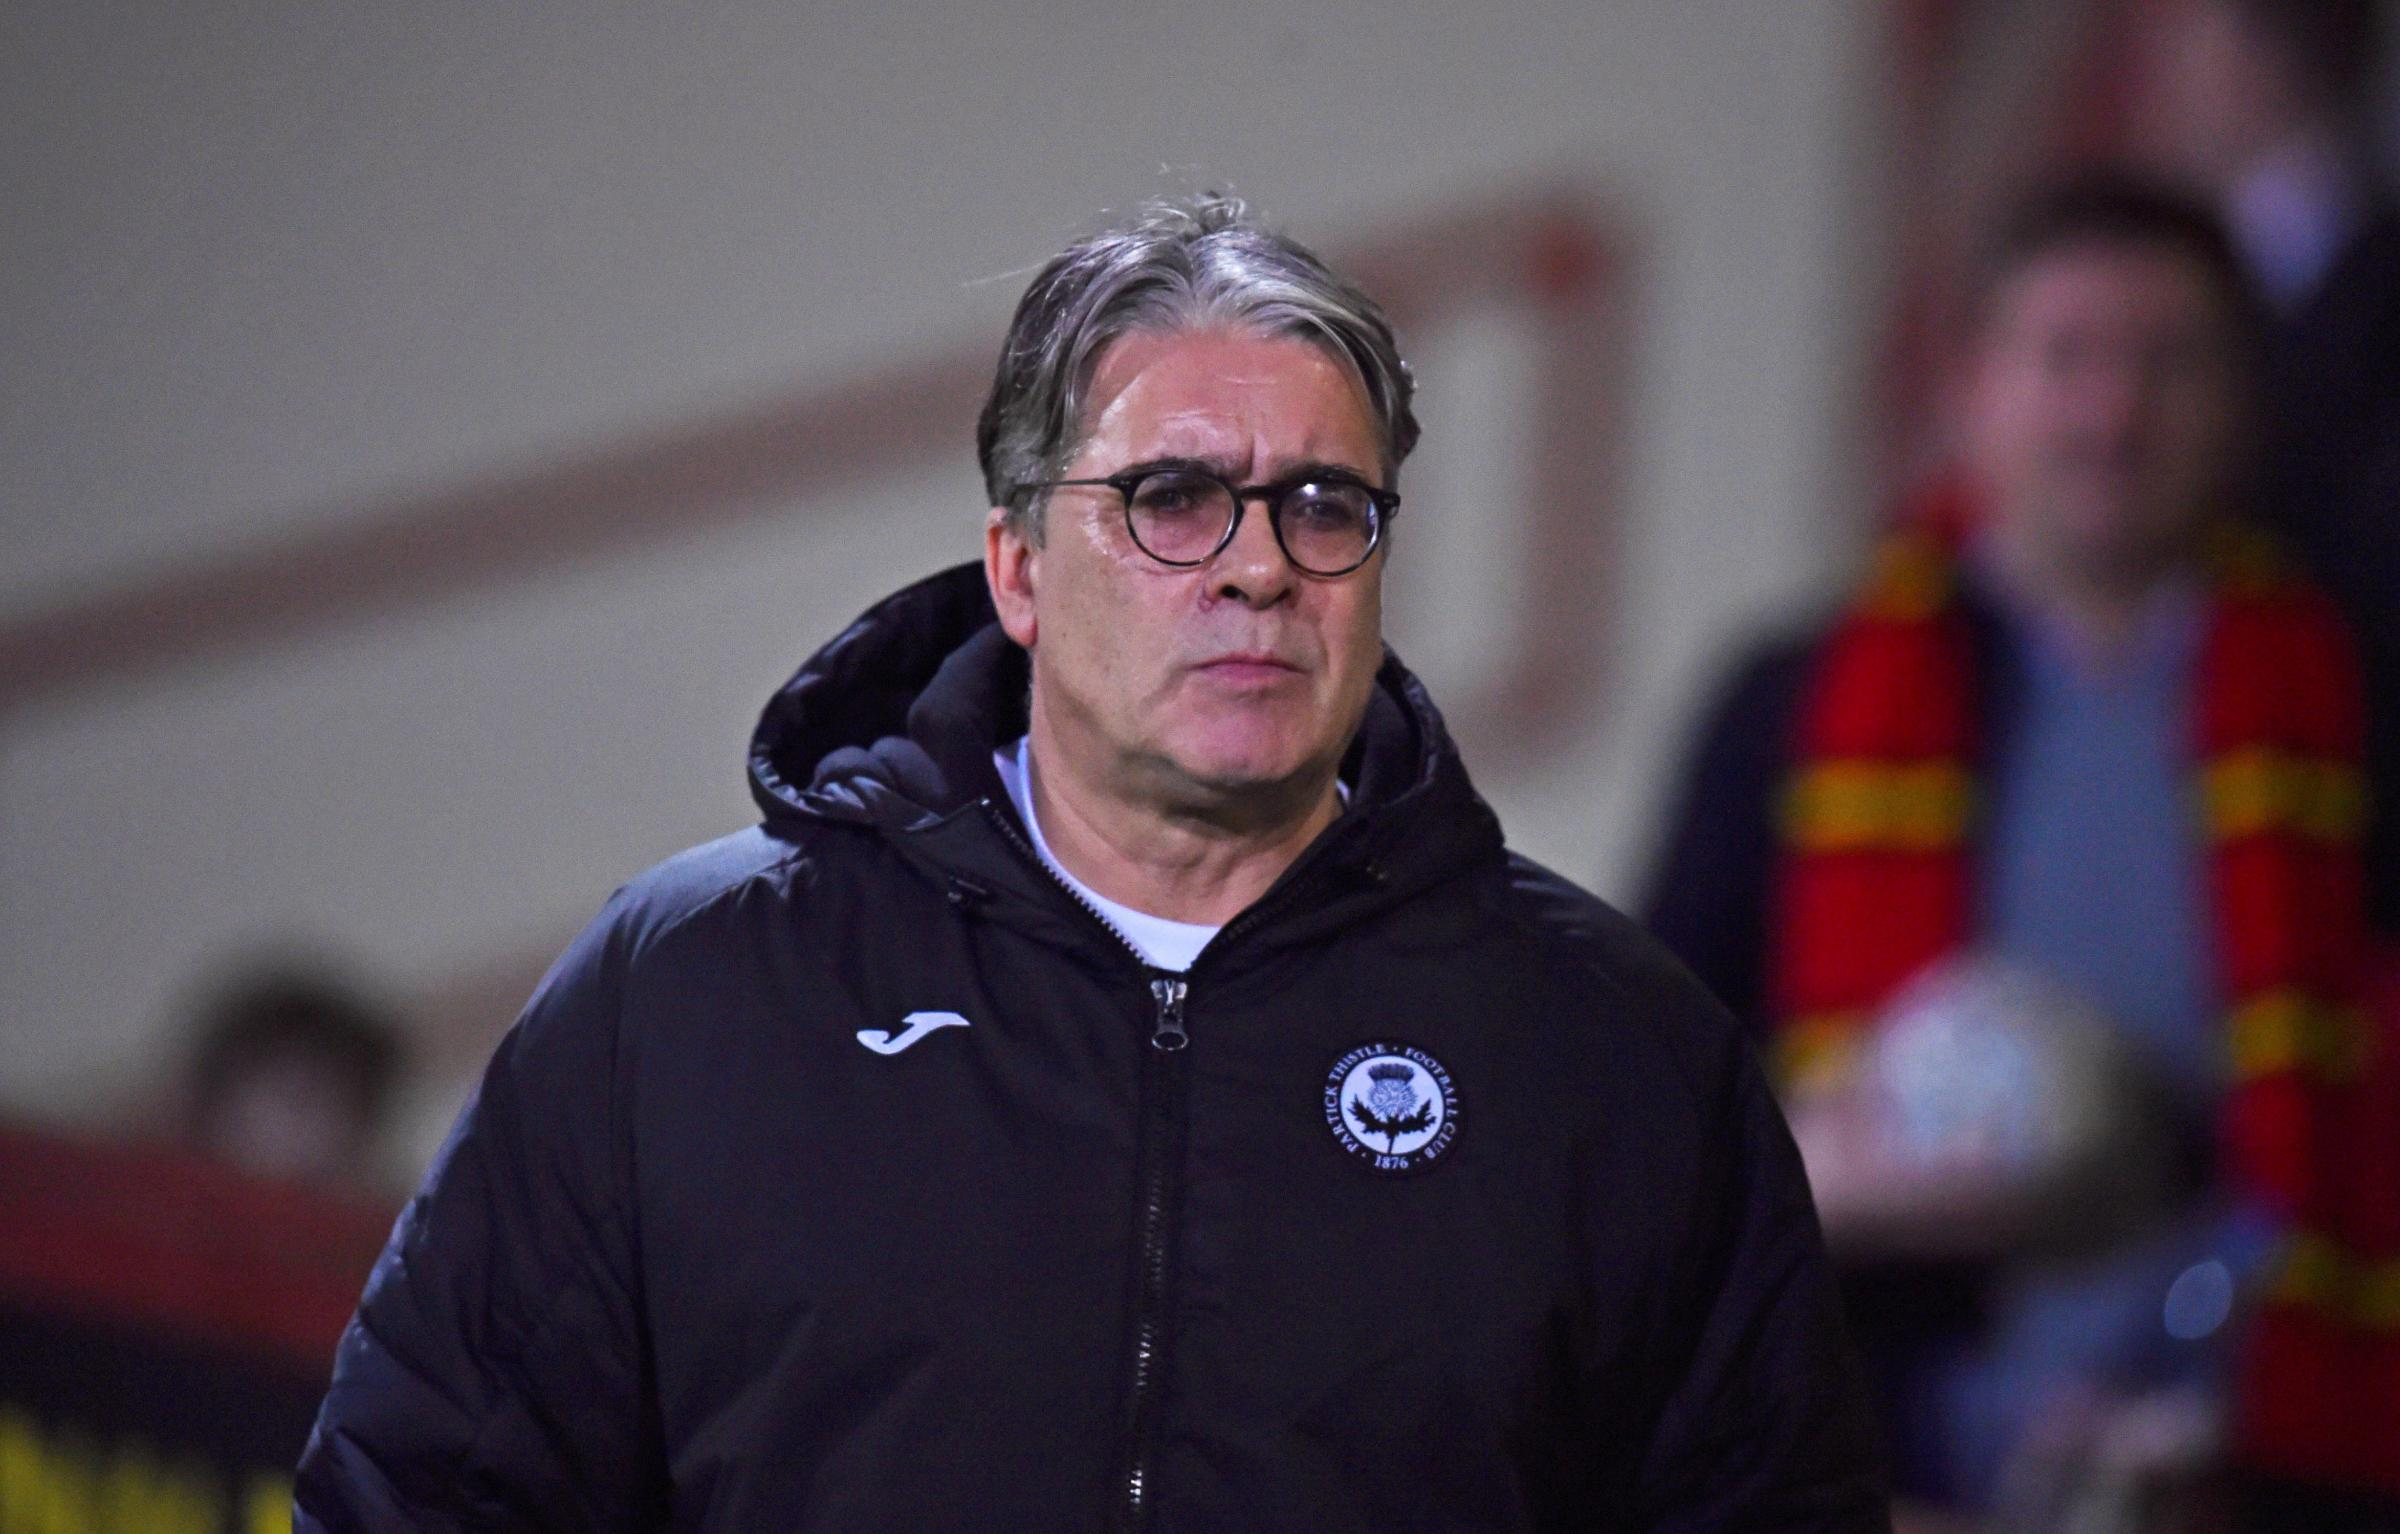 Partick Thistle 0, Queen of the South 0: McCall sees the positives after stalemate